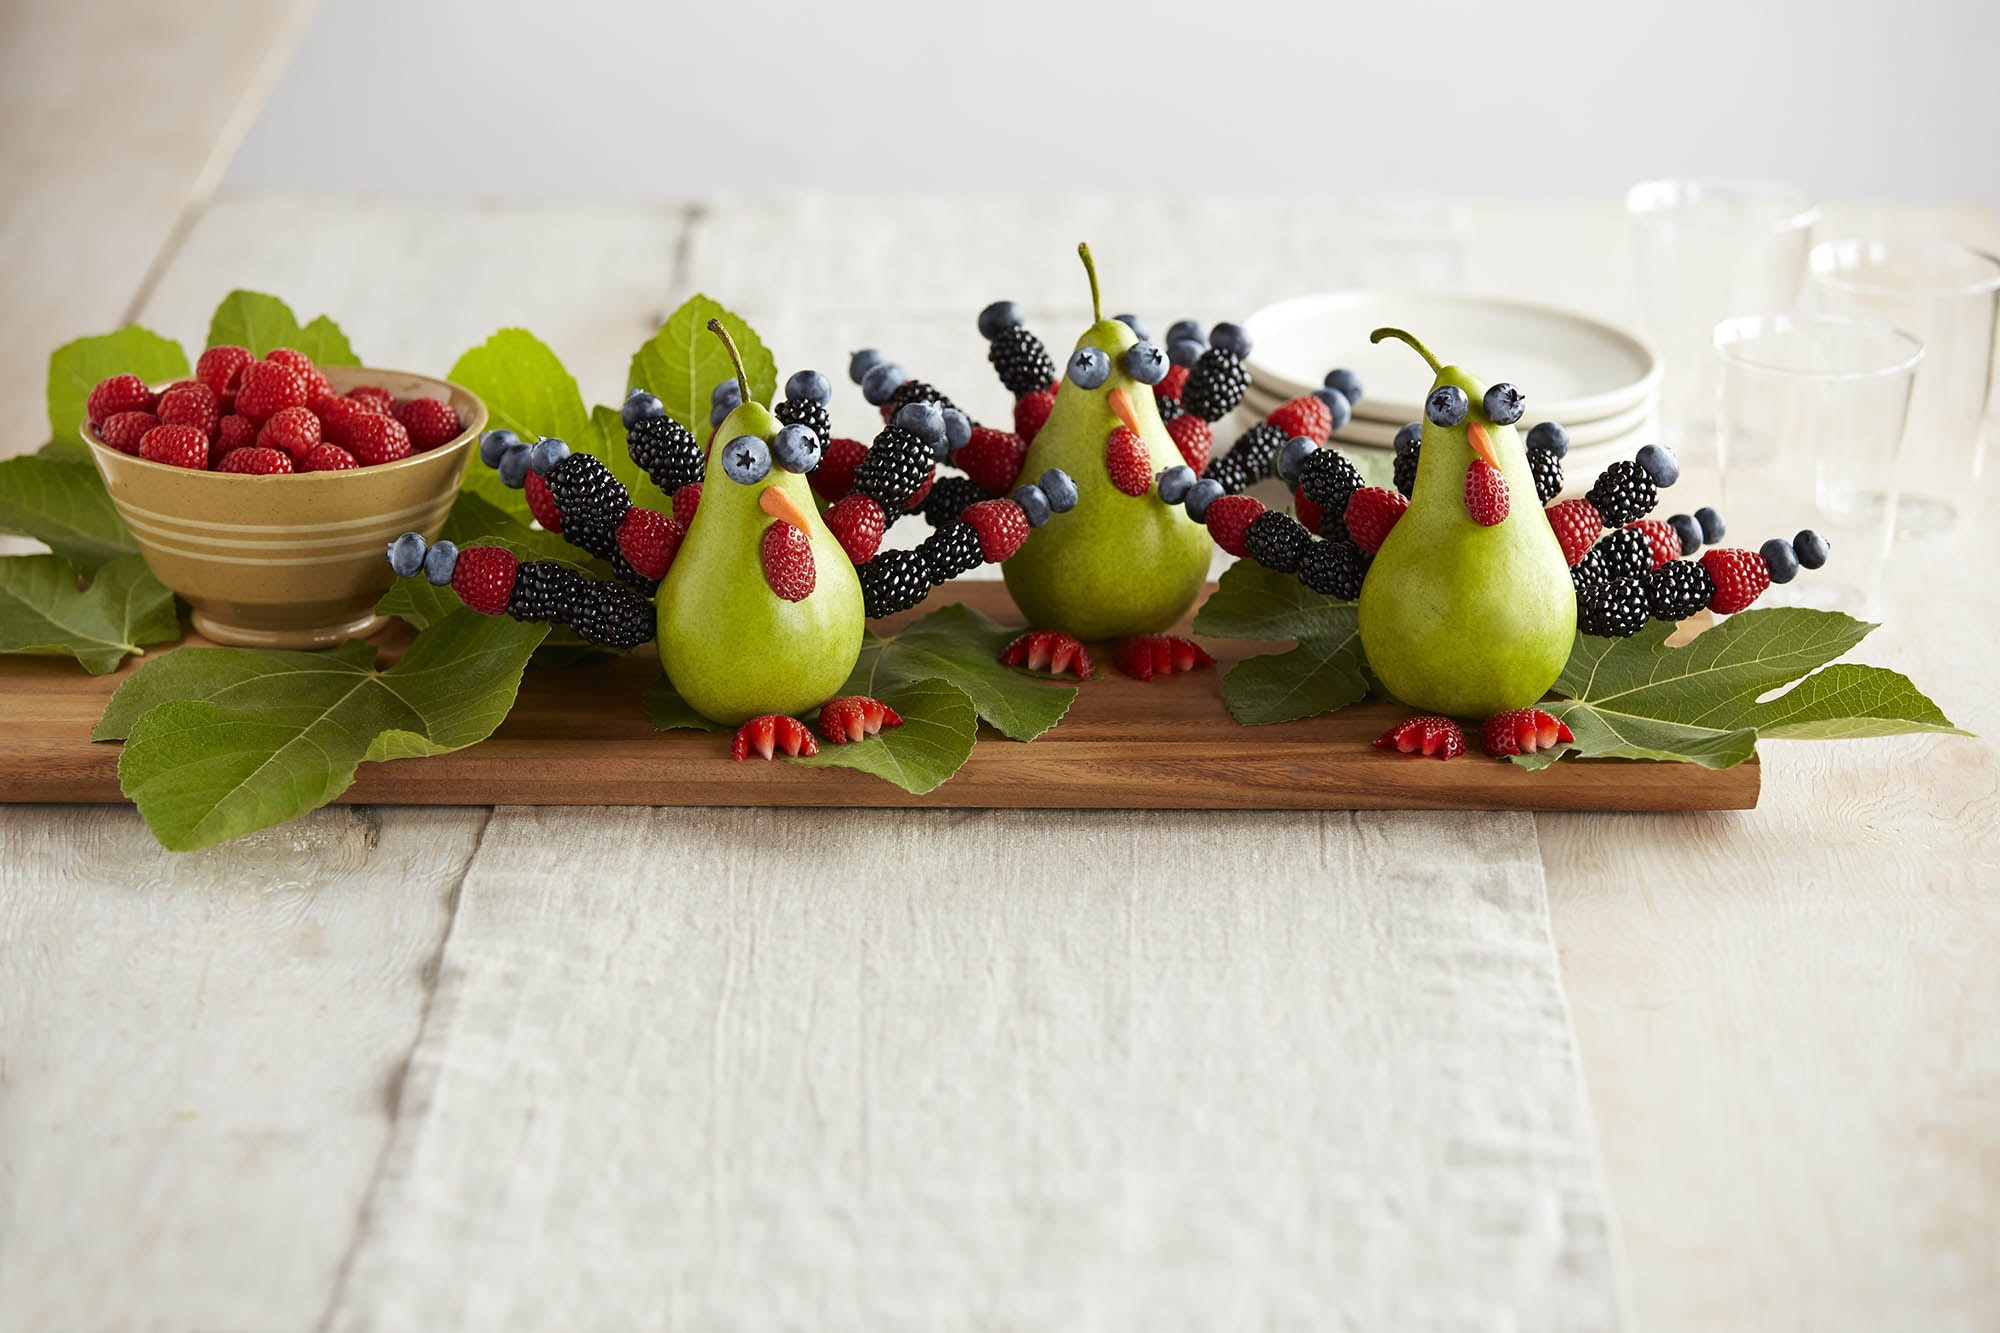 Turkeys made out of pears and berries